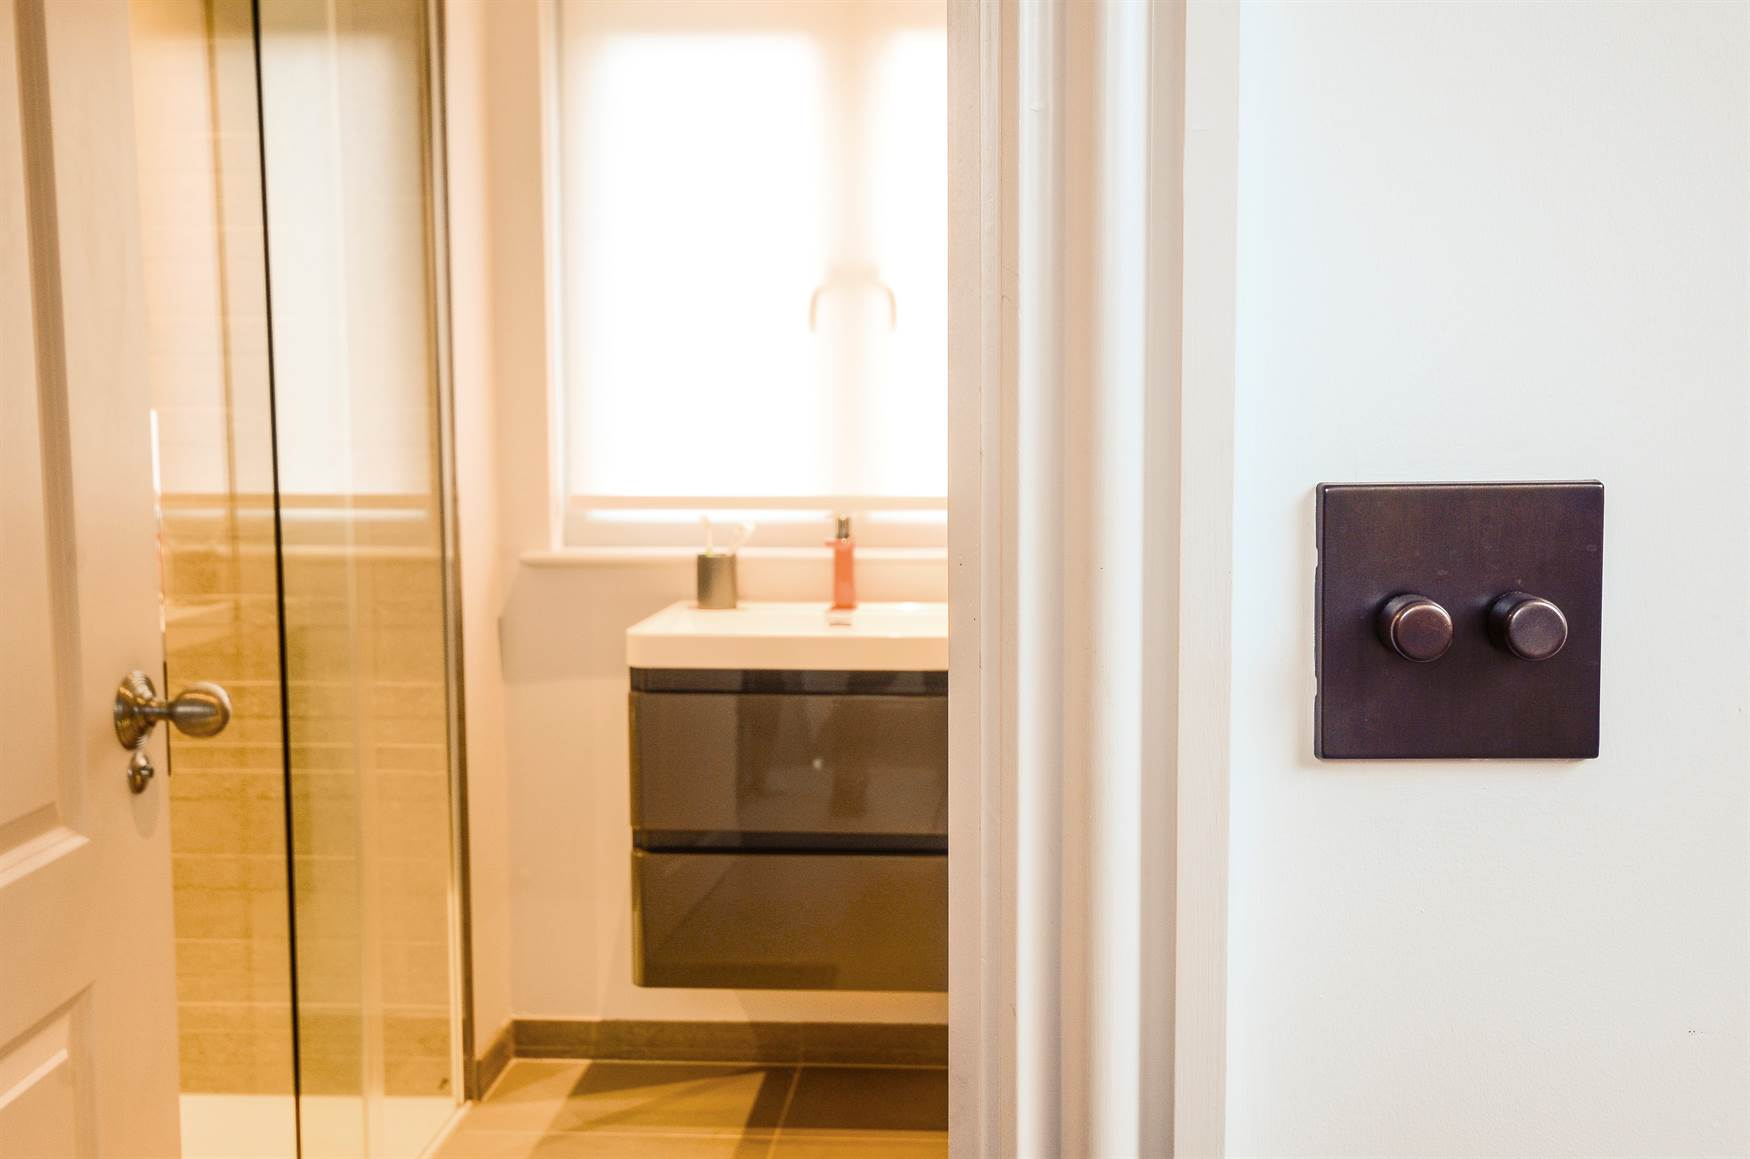 Bronze dimmer switch outside bathroom